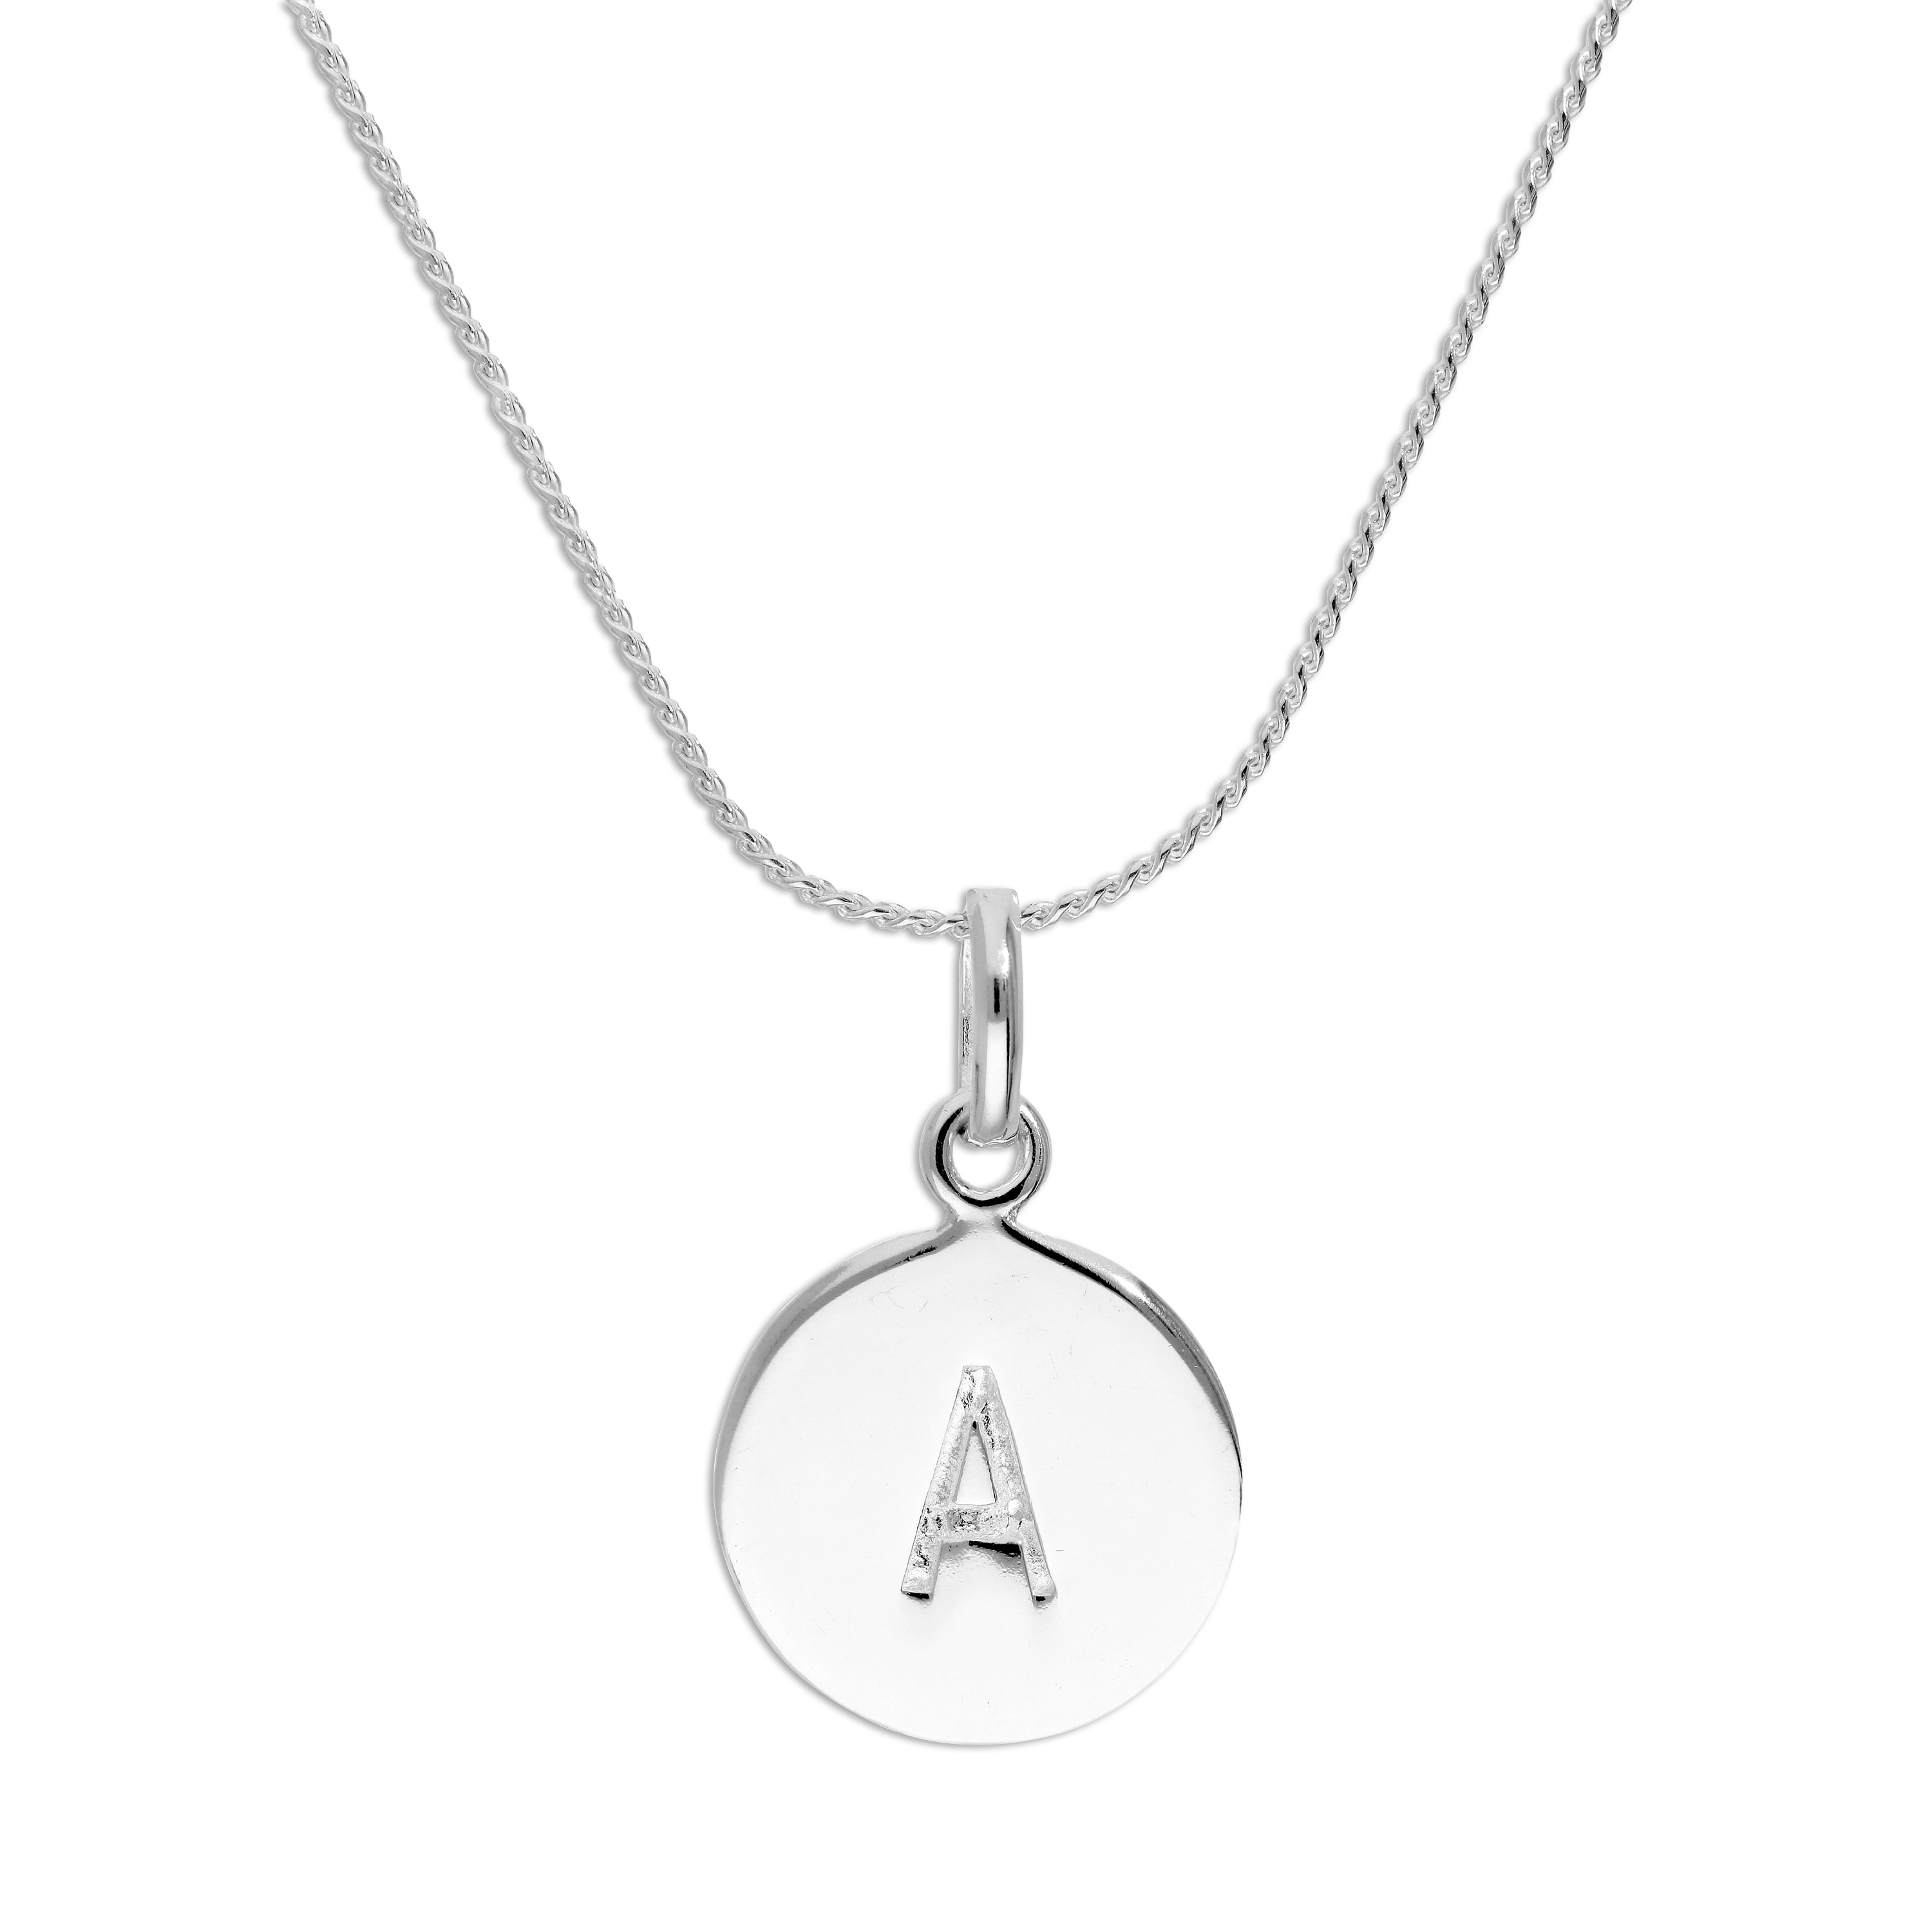 An image of Sterling Silver Initial Letter A Necklace 22 Inches Blue